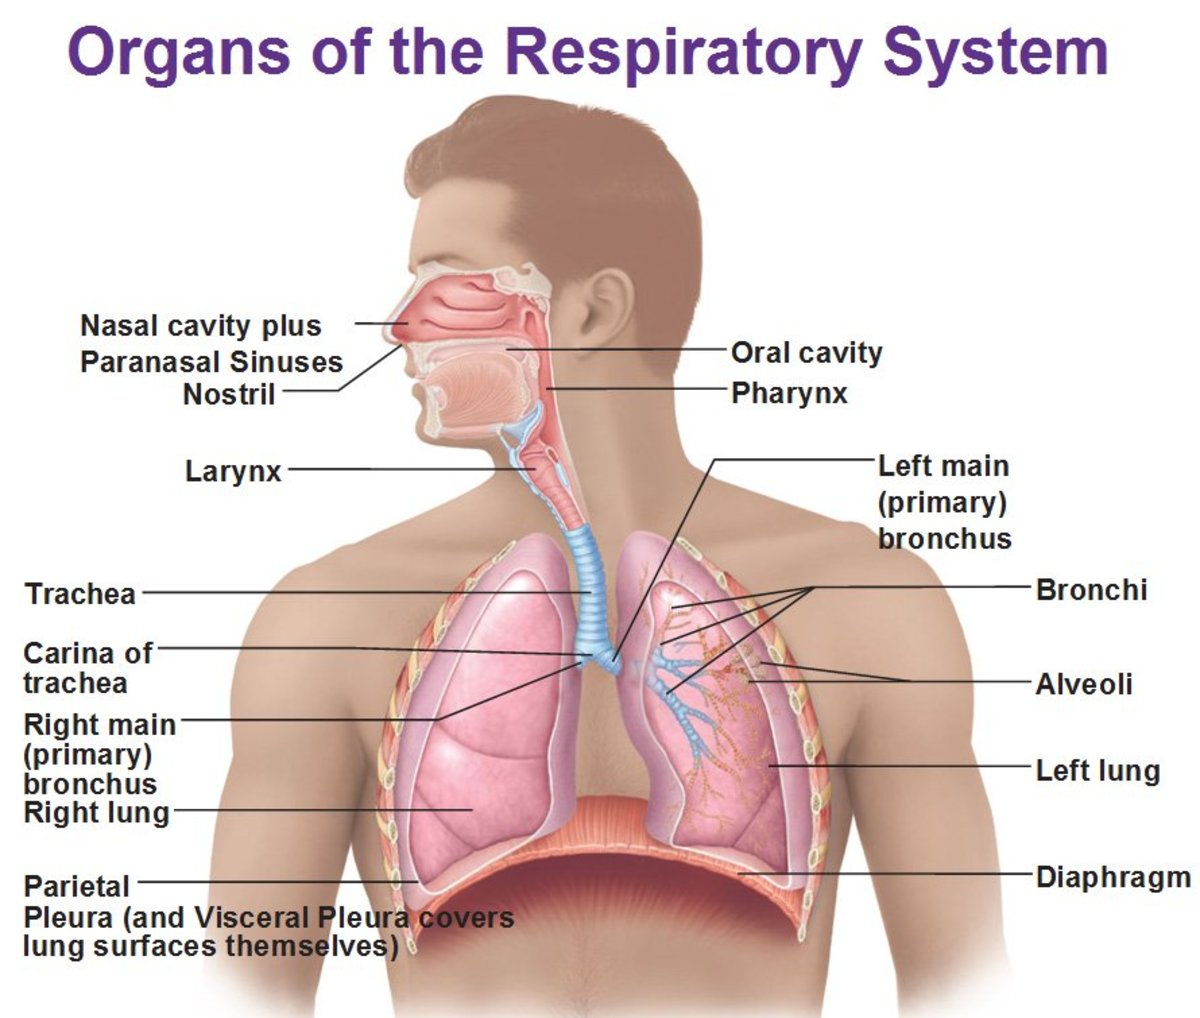 Respiratory Physiology Introduction Owlcation